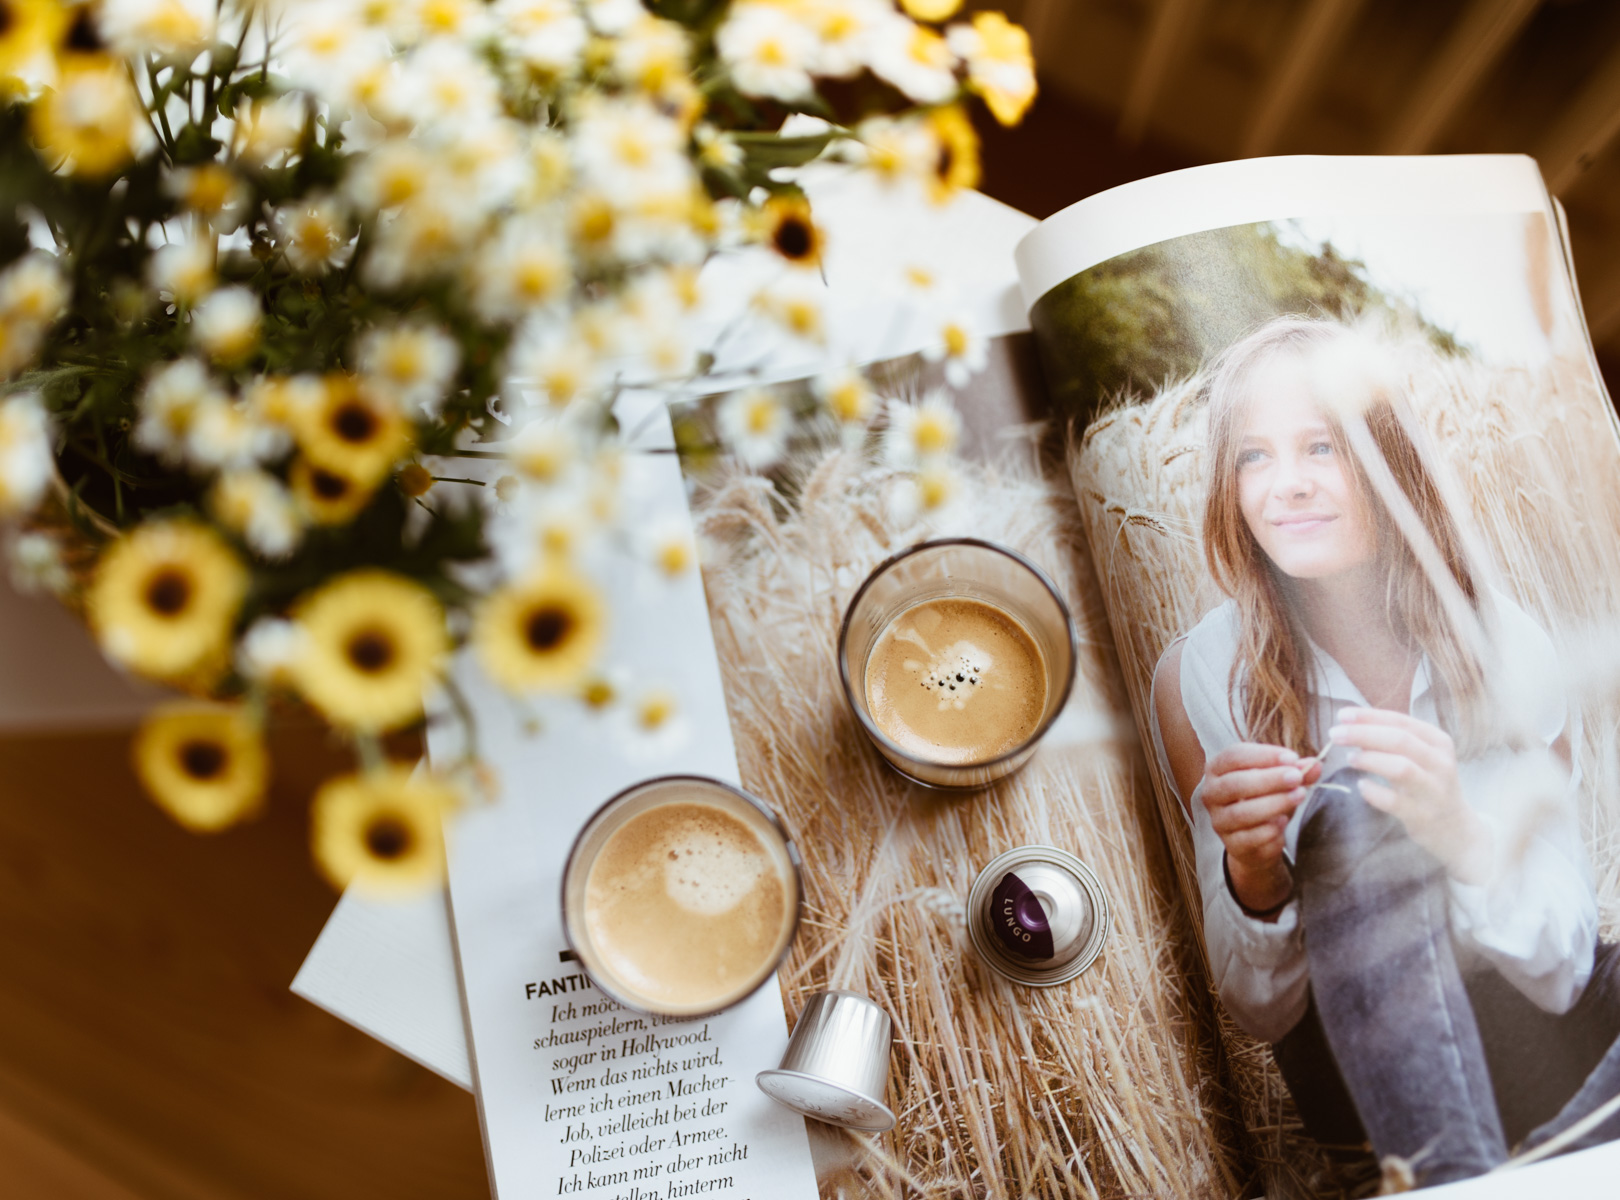 Coffee is happiness in a cup: Die Jacobs Espressokapseln fashionzauber-coffeelover-Jacobs-espresso-kapseln-flatlay-lifestyleblog-1